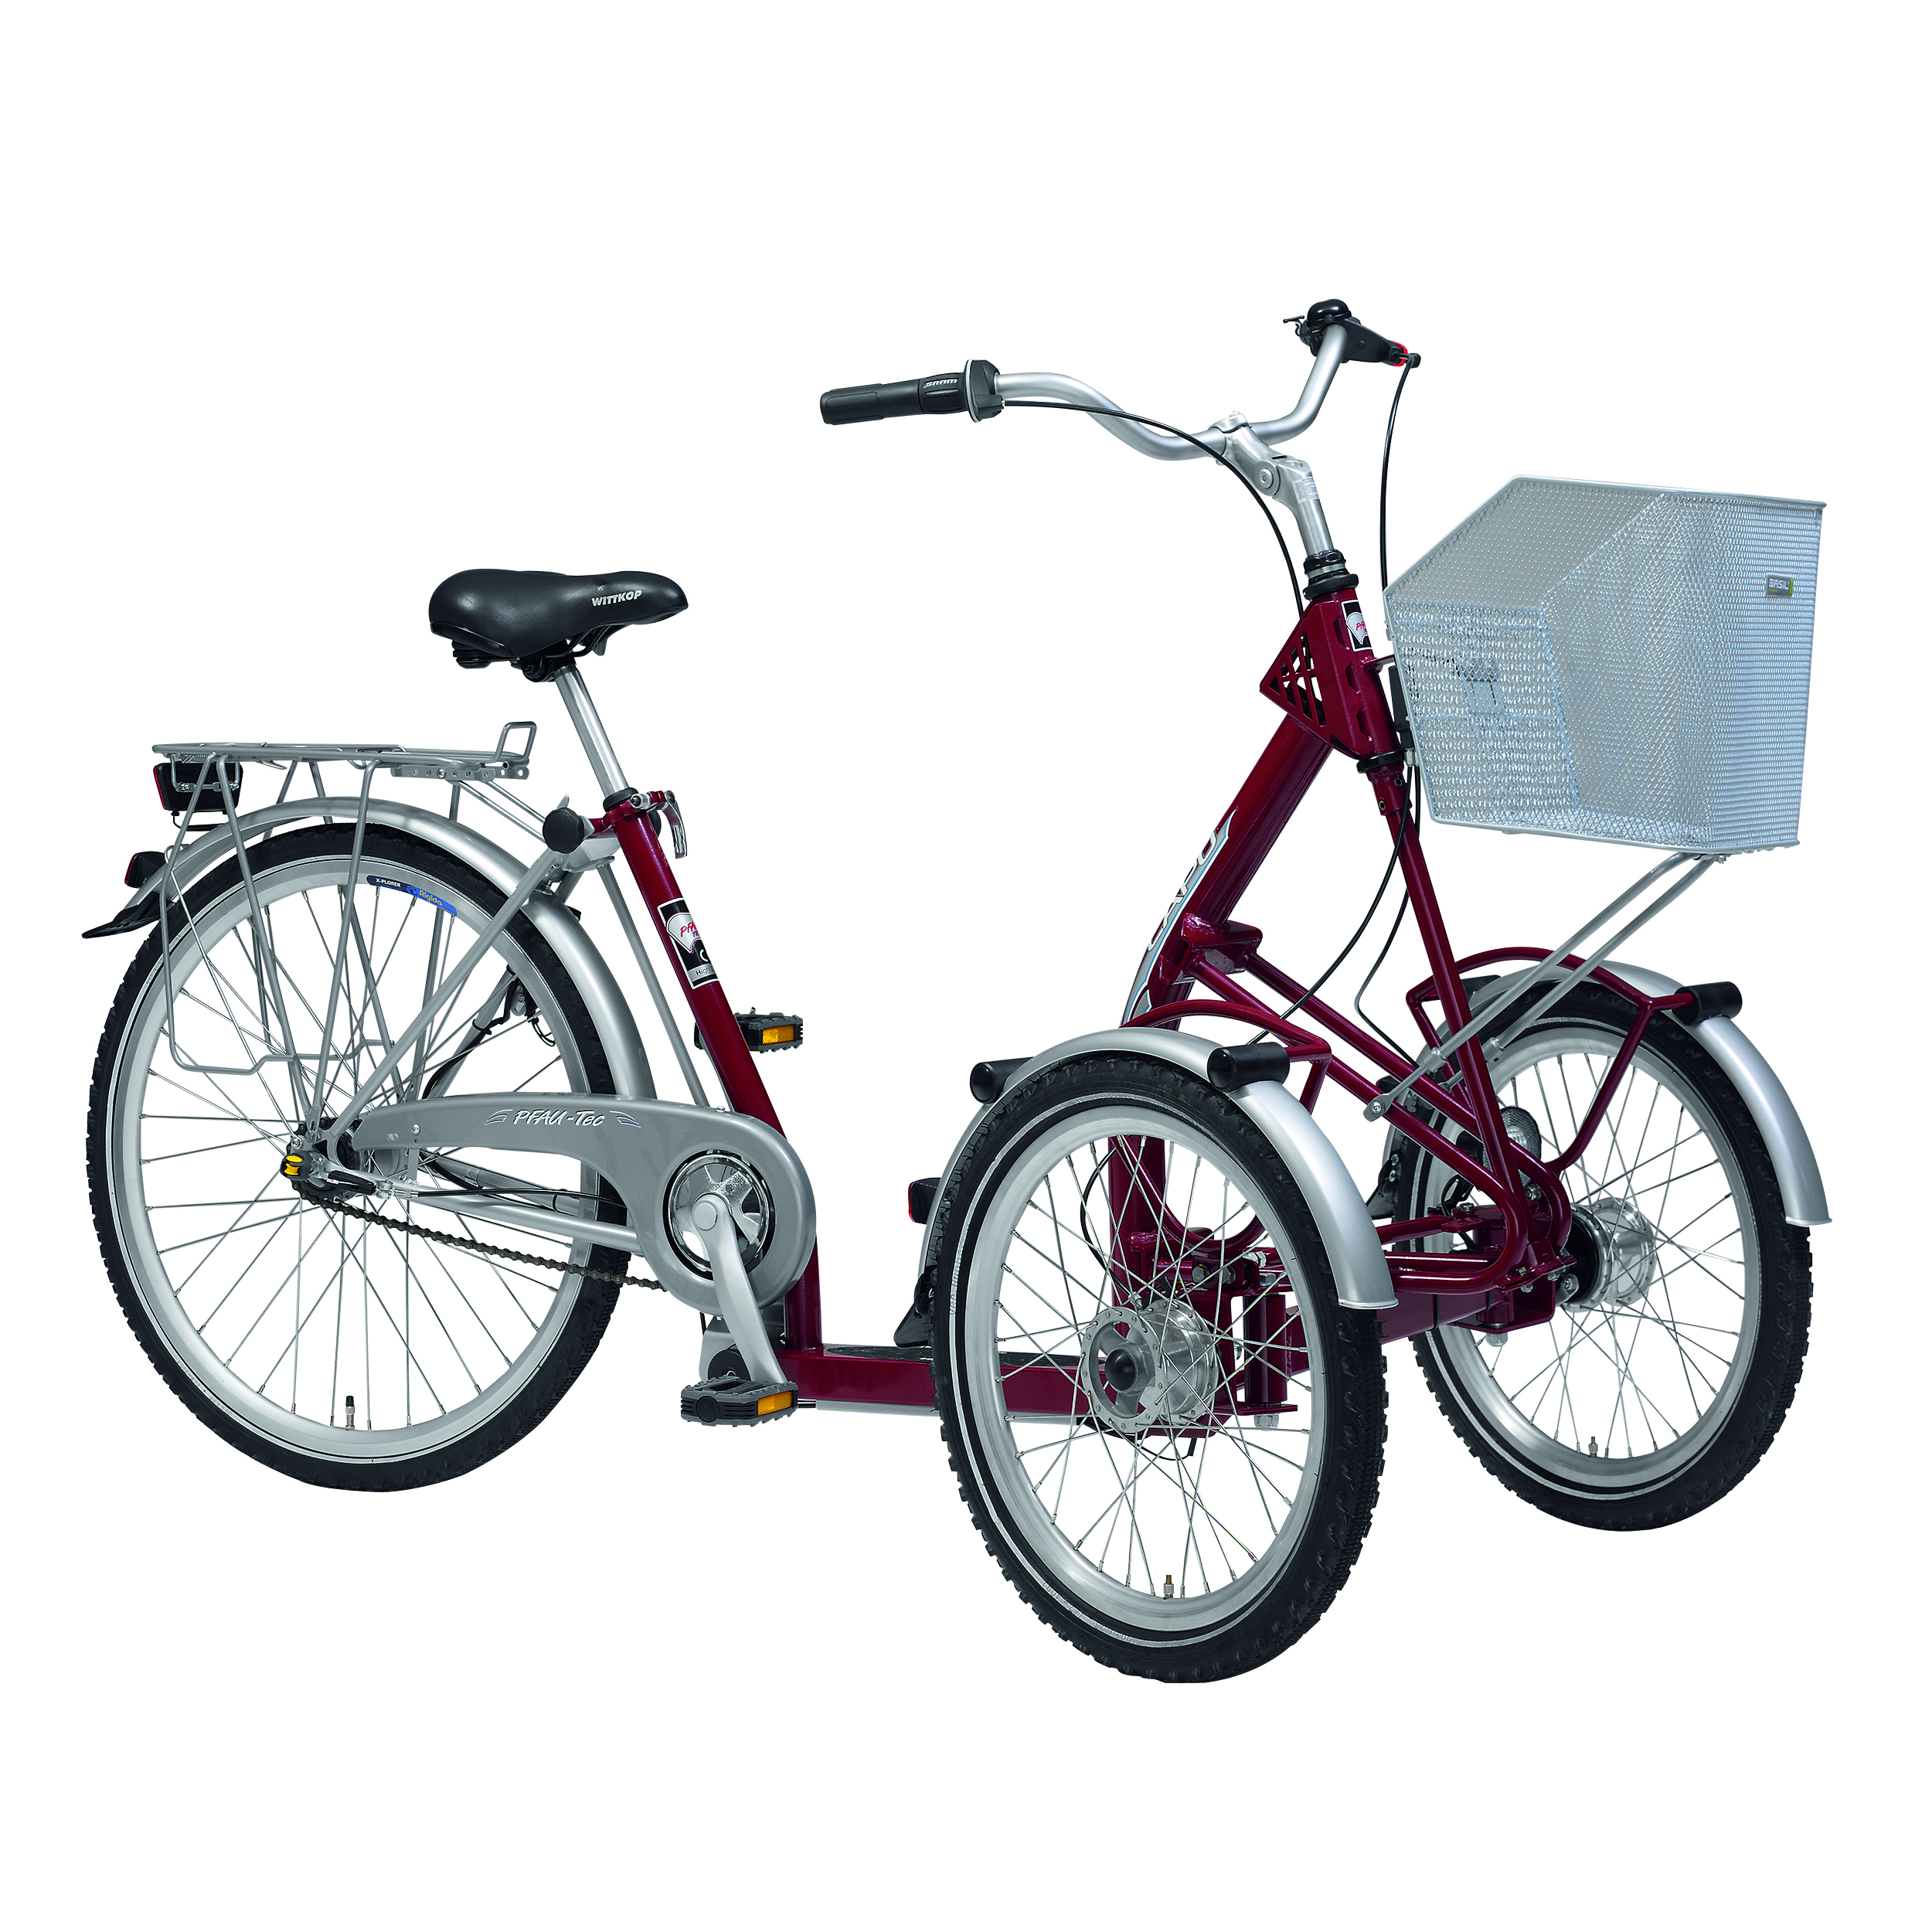 "PFIFF Capo Adult Front Tricycle, 20"" and 26"" Wheels, Maroon"